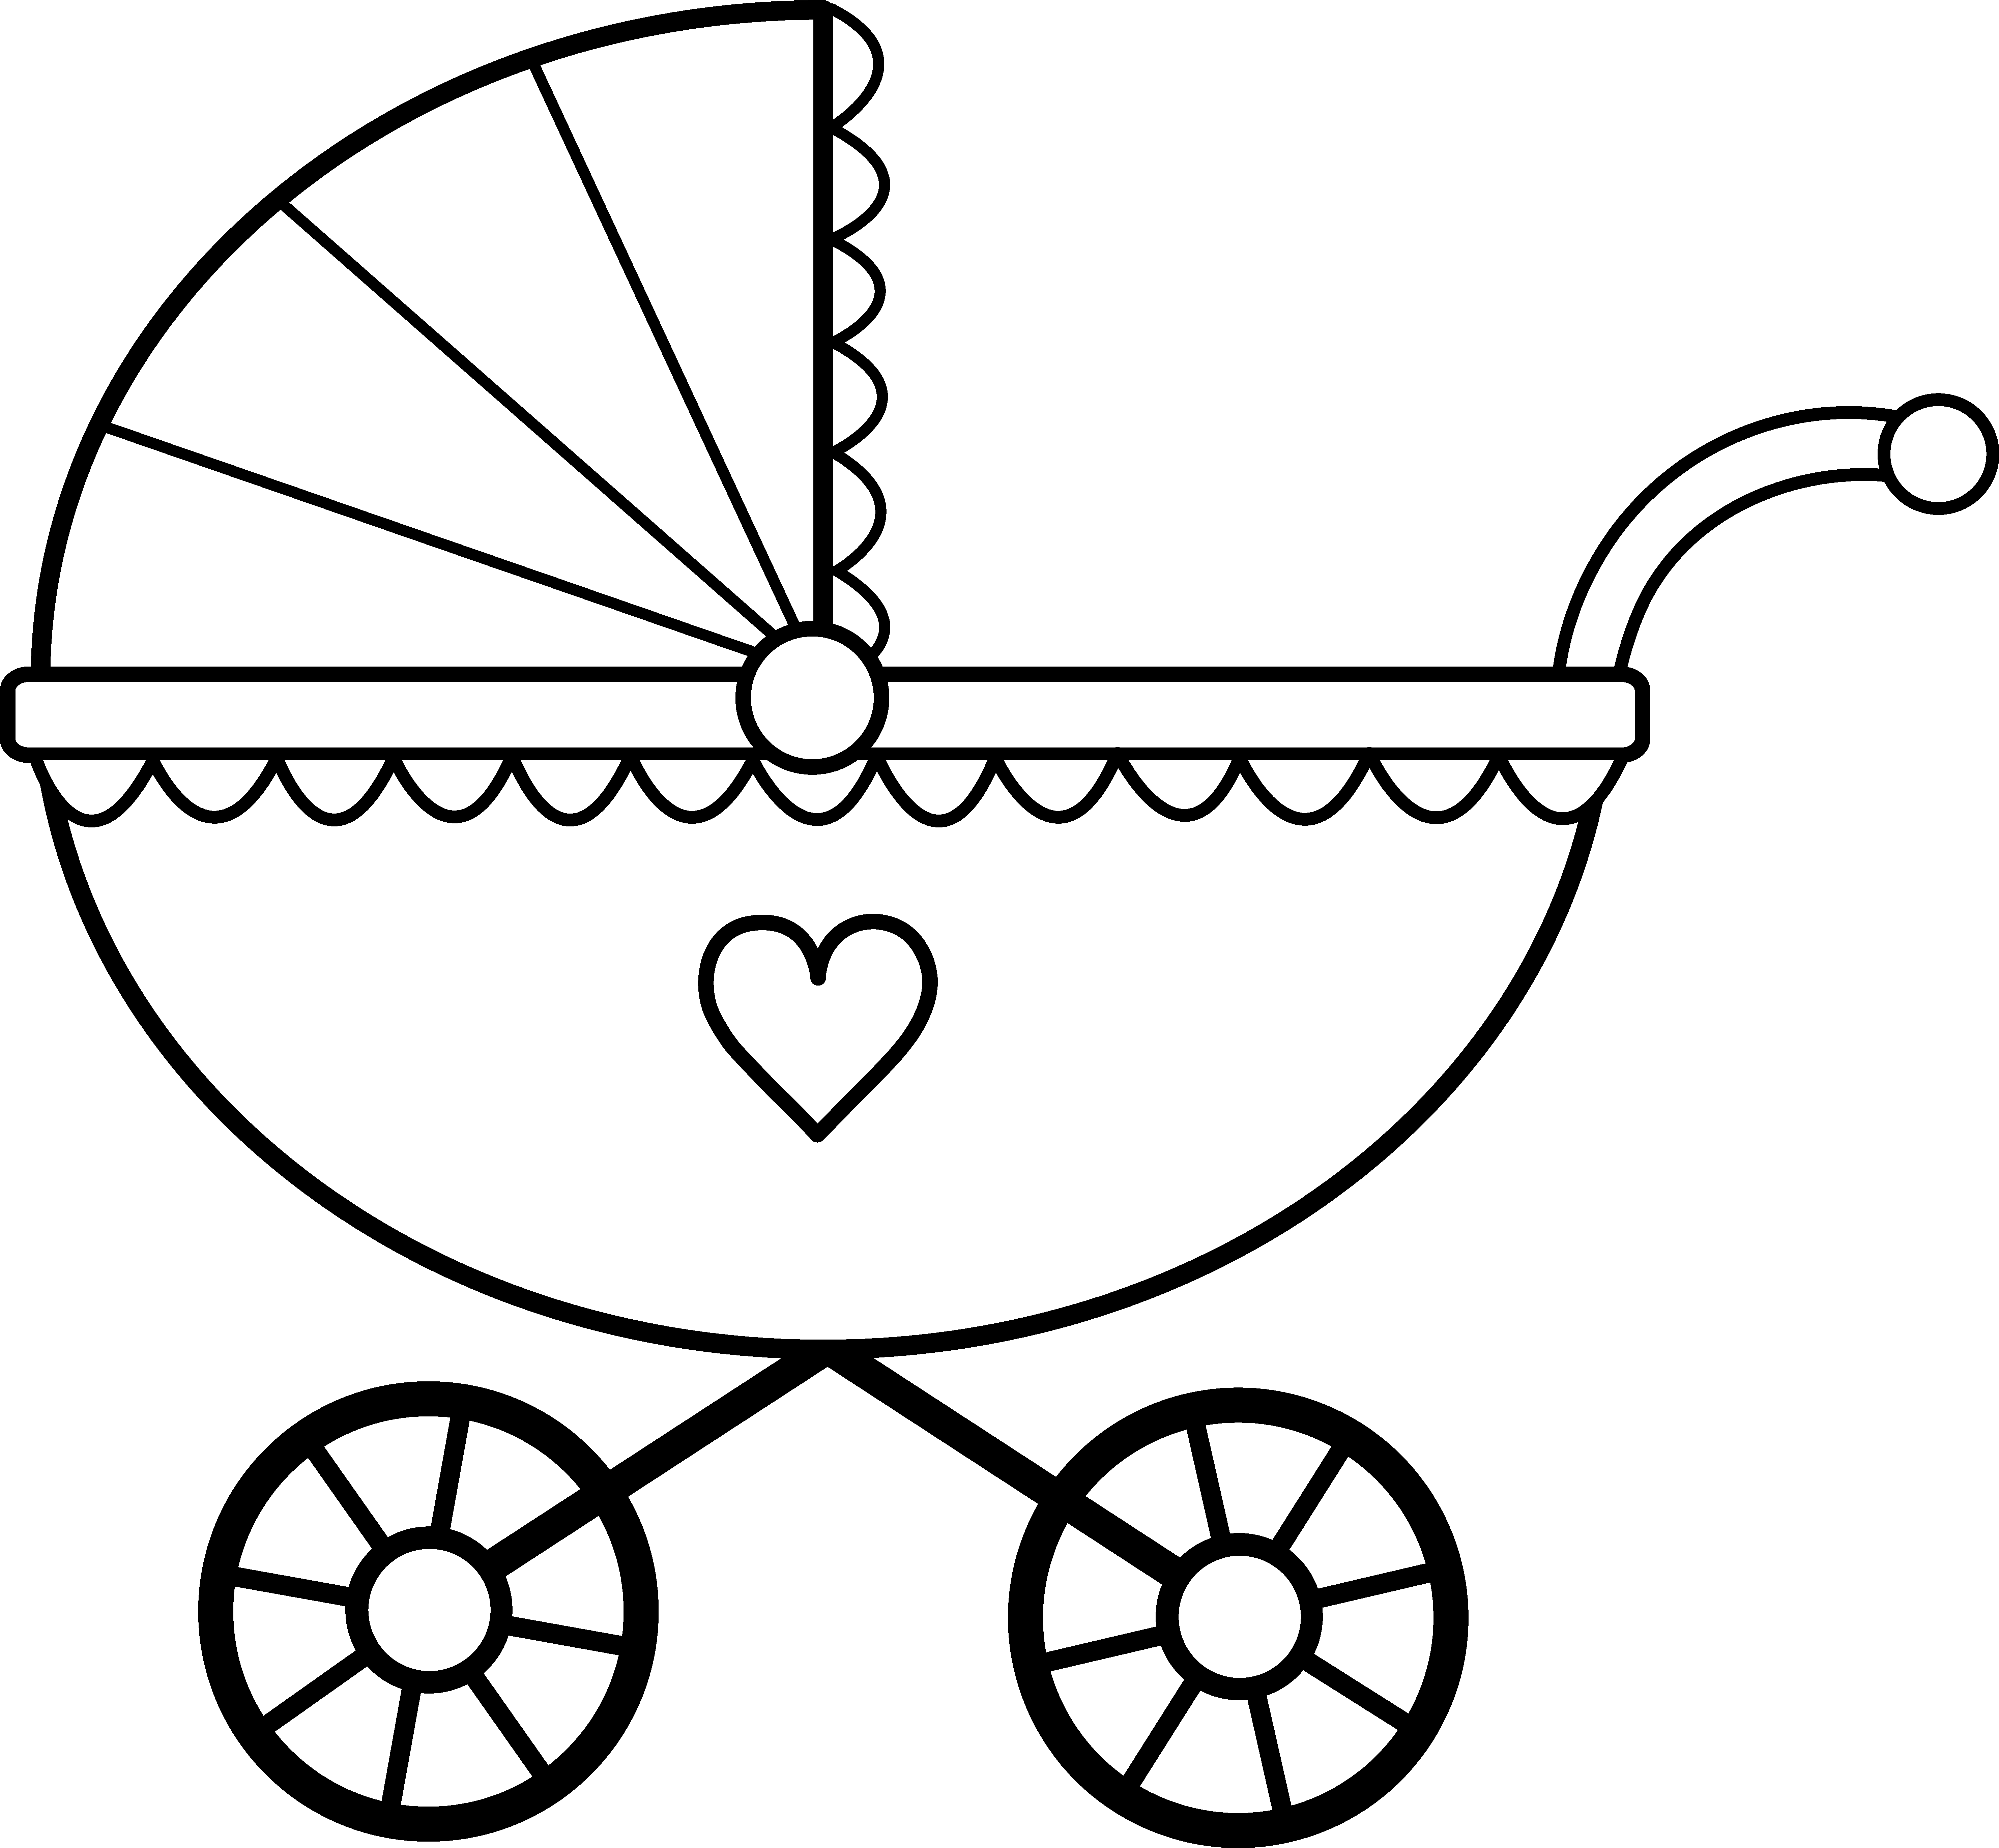 Baby Carriage Line Art - Free Clip Art-Baby Carriage Line Art - Free Clip Art-1